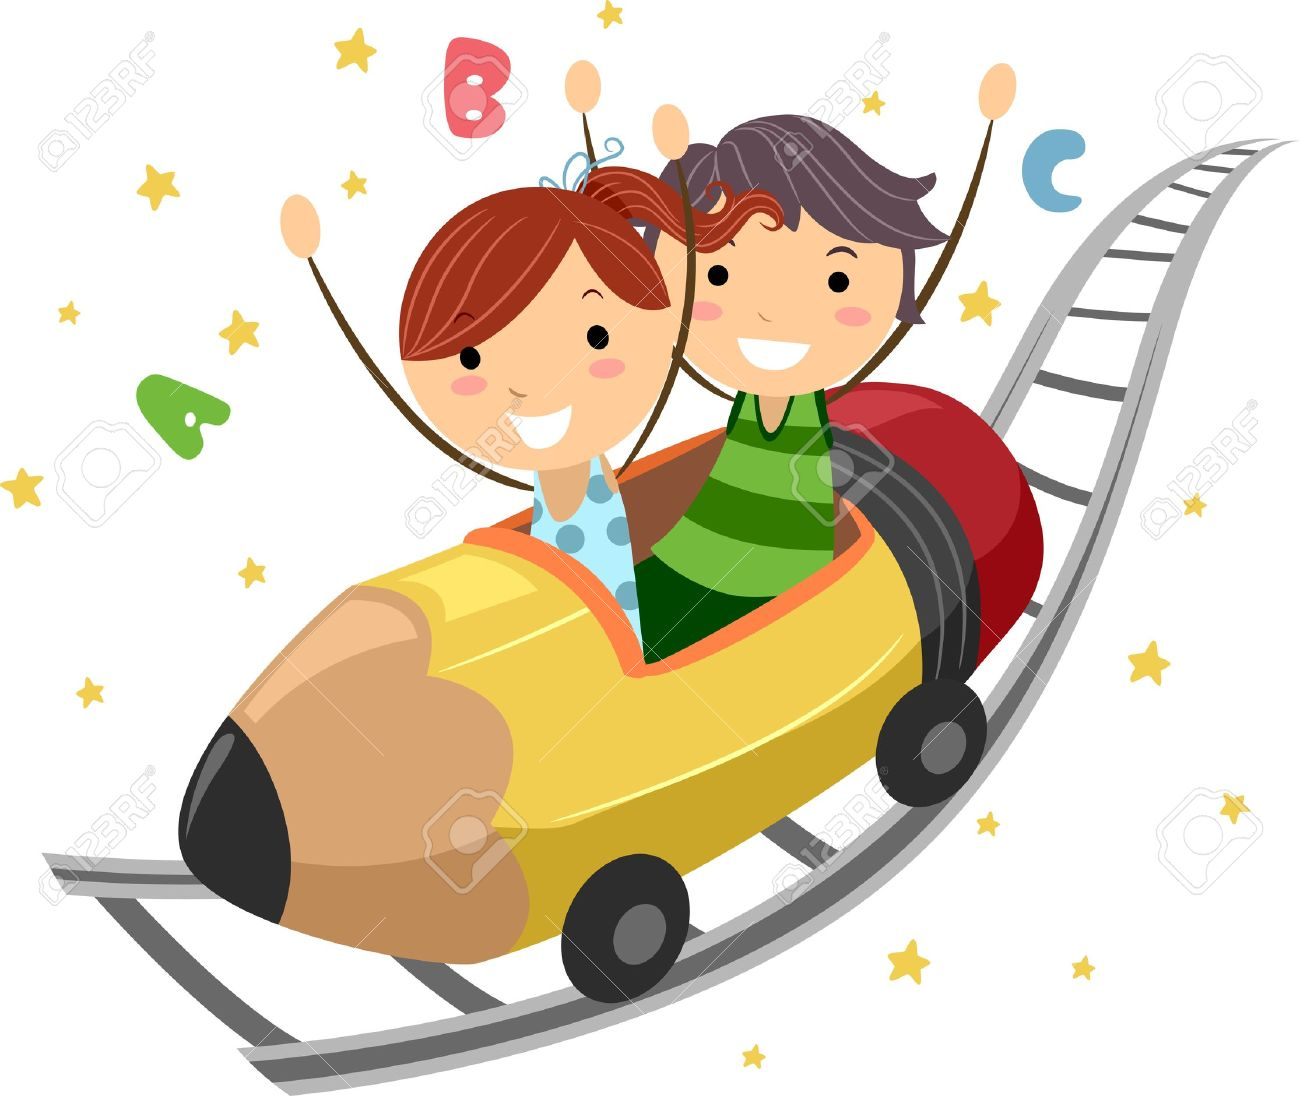 Kids with pencil clipart clipart transparent stock Illustration Of Kids Riding On A Pencil Ride Stock Photo, Picture ... clipart transparent stock